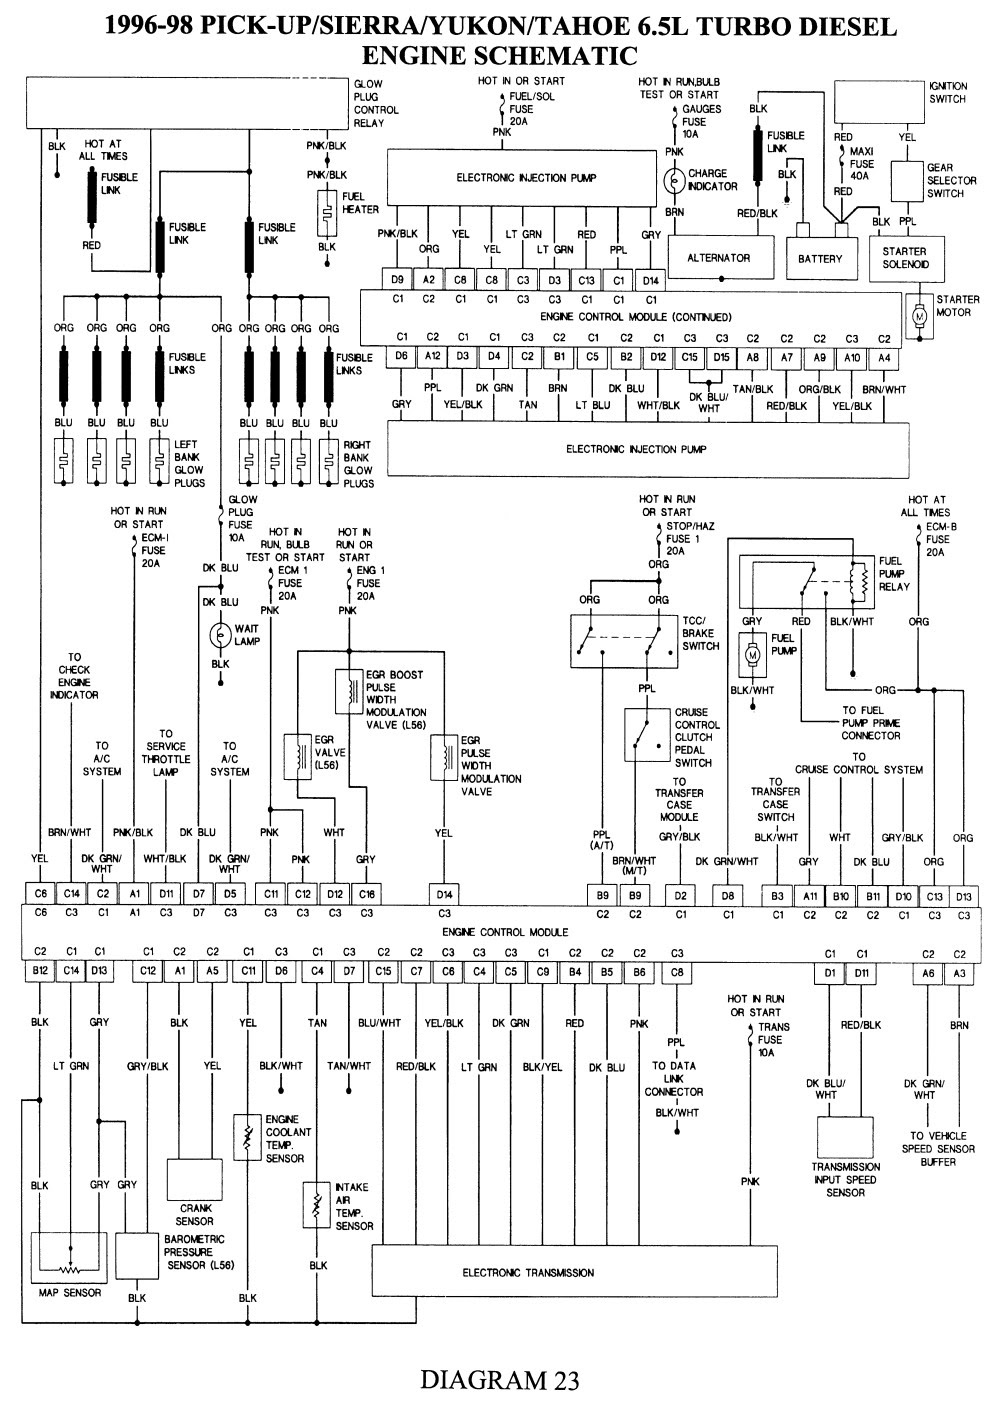 1997 Tahoe Wiring Diagram - Wiring Diagram Single Phase Motor Control -  1994-chevys.yotube-dot-com-ds23.pistadelsole.it | 97 Tahoe Wiring Schematic |  | Wiring Diagram Resource